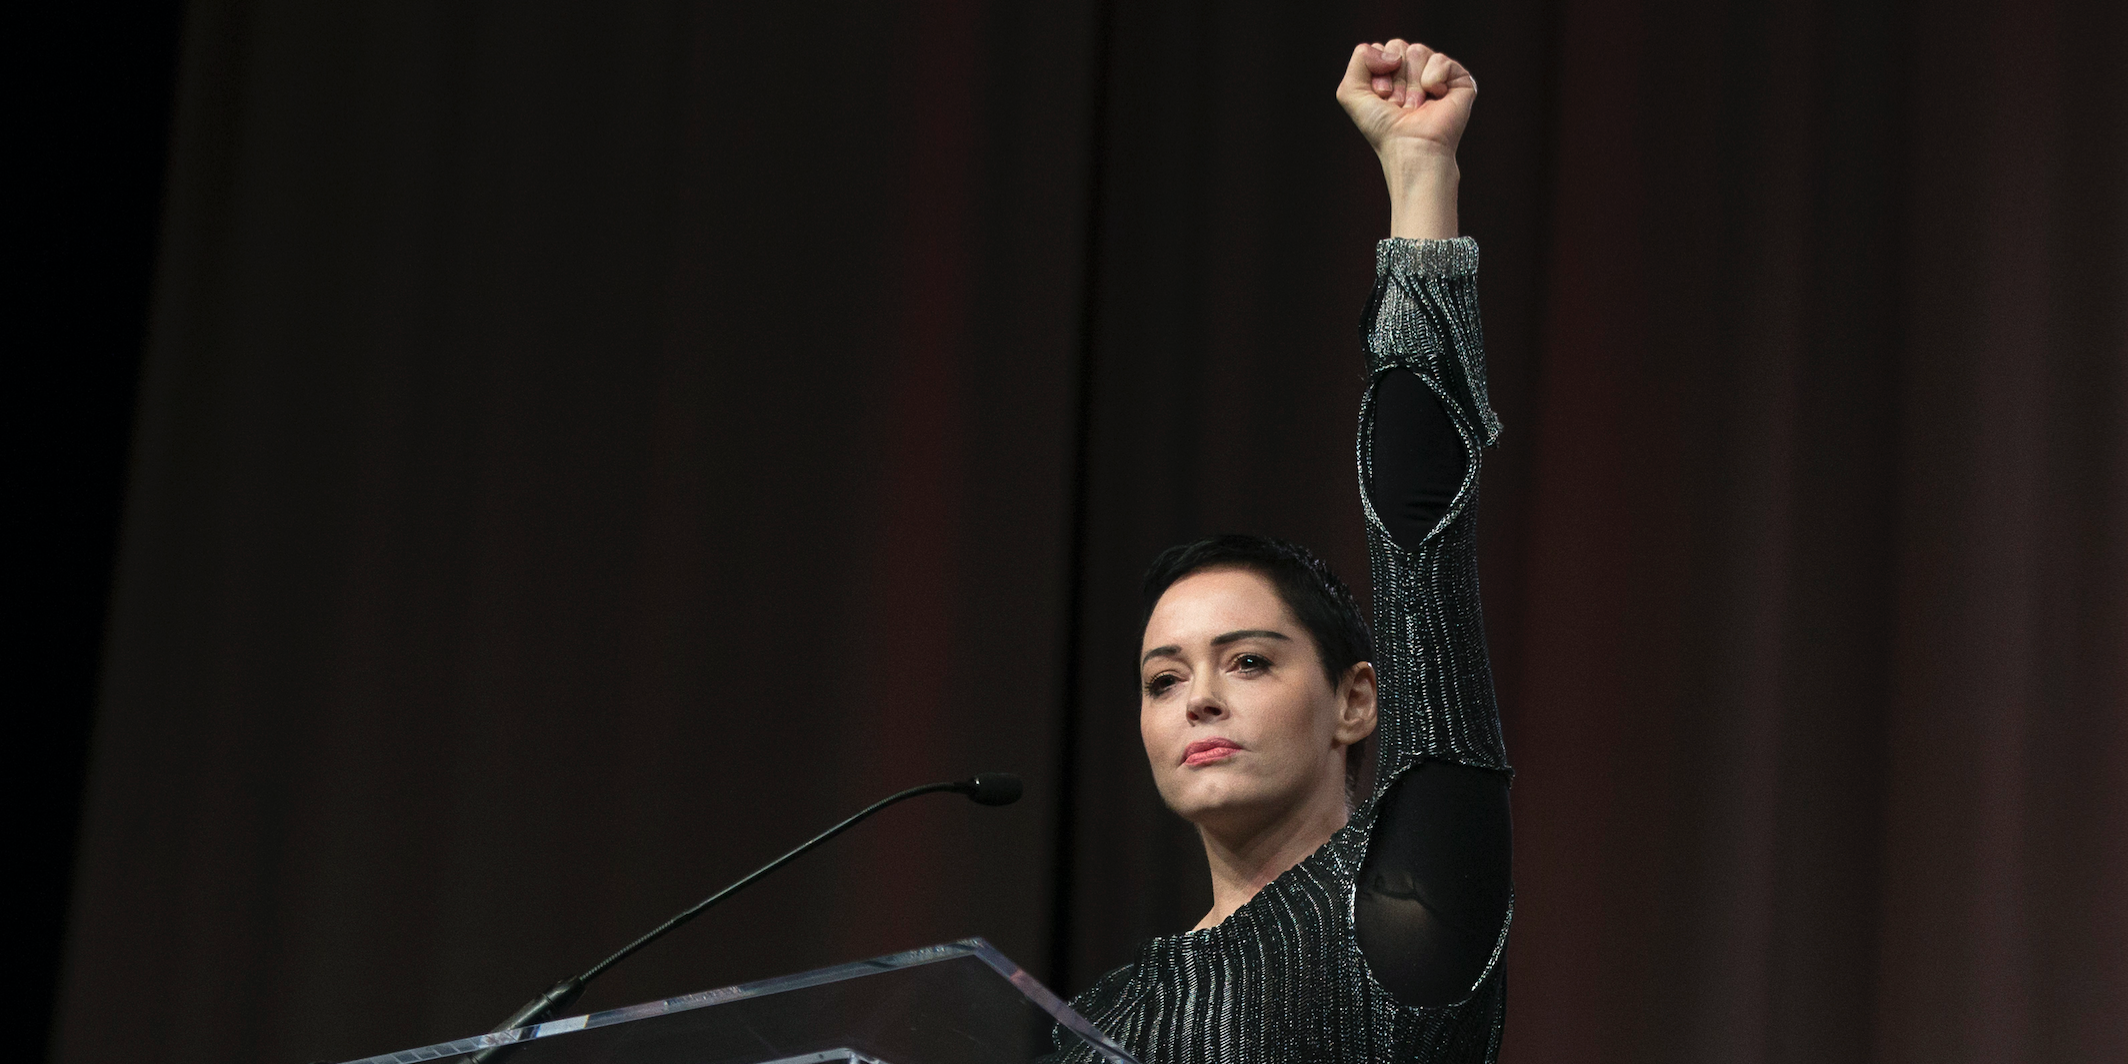 Rose McGowan raises her fist during her opening remarks to the audience at the Women's March / Women's Convention in Detroit, Michigan